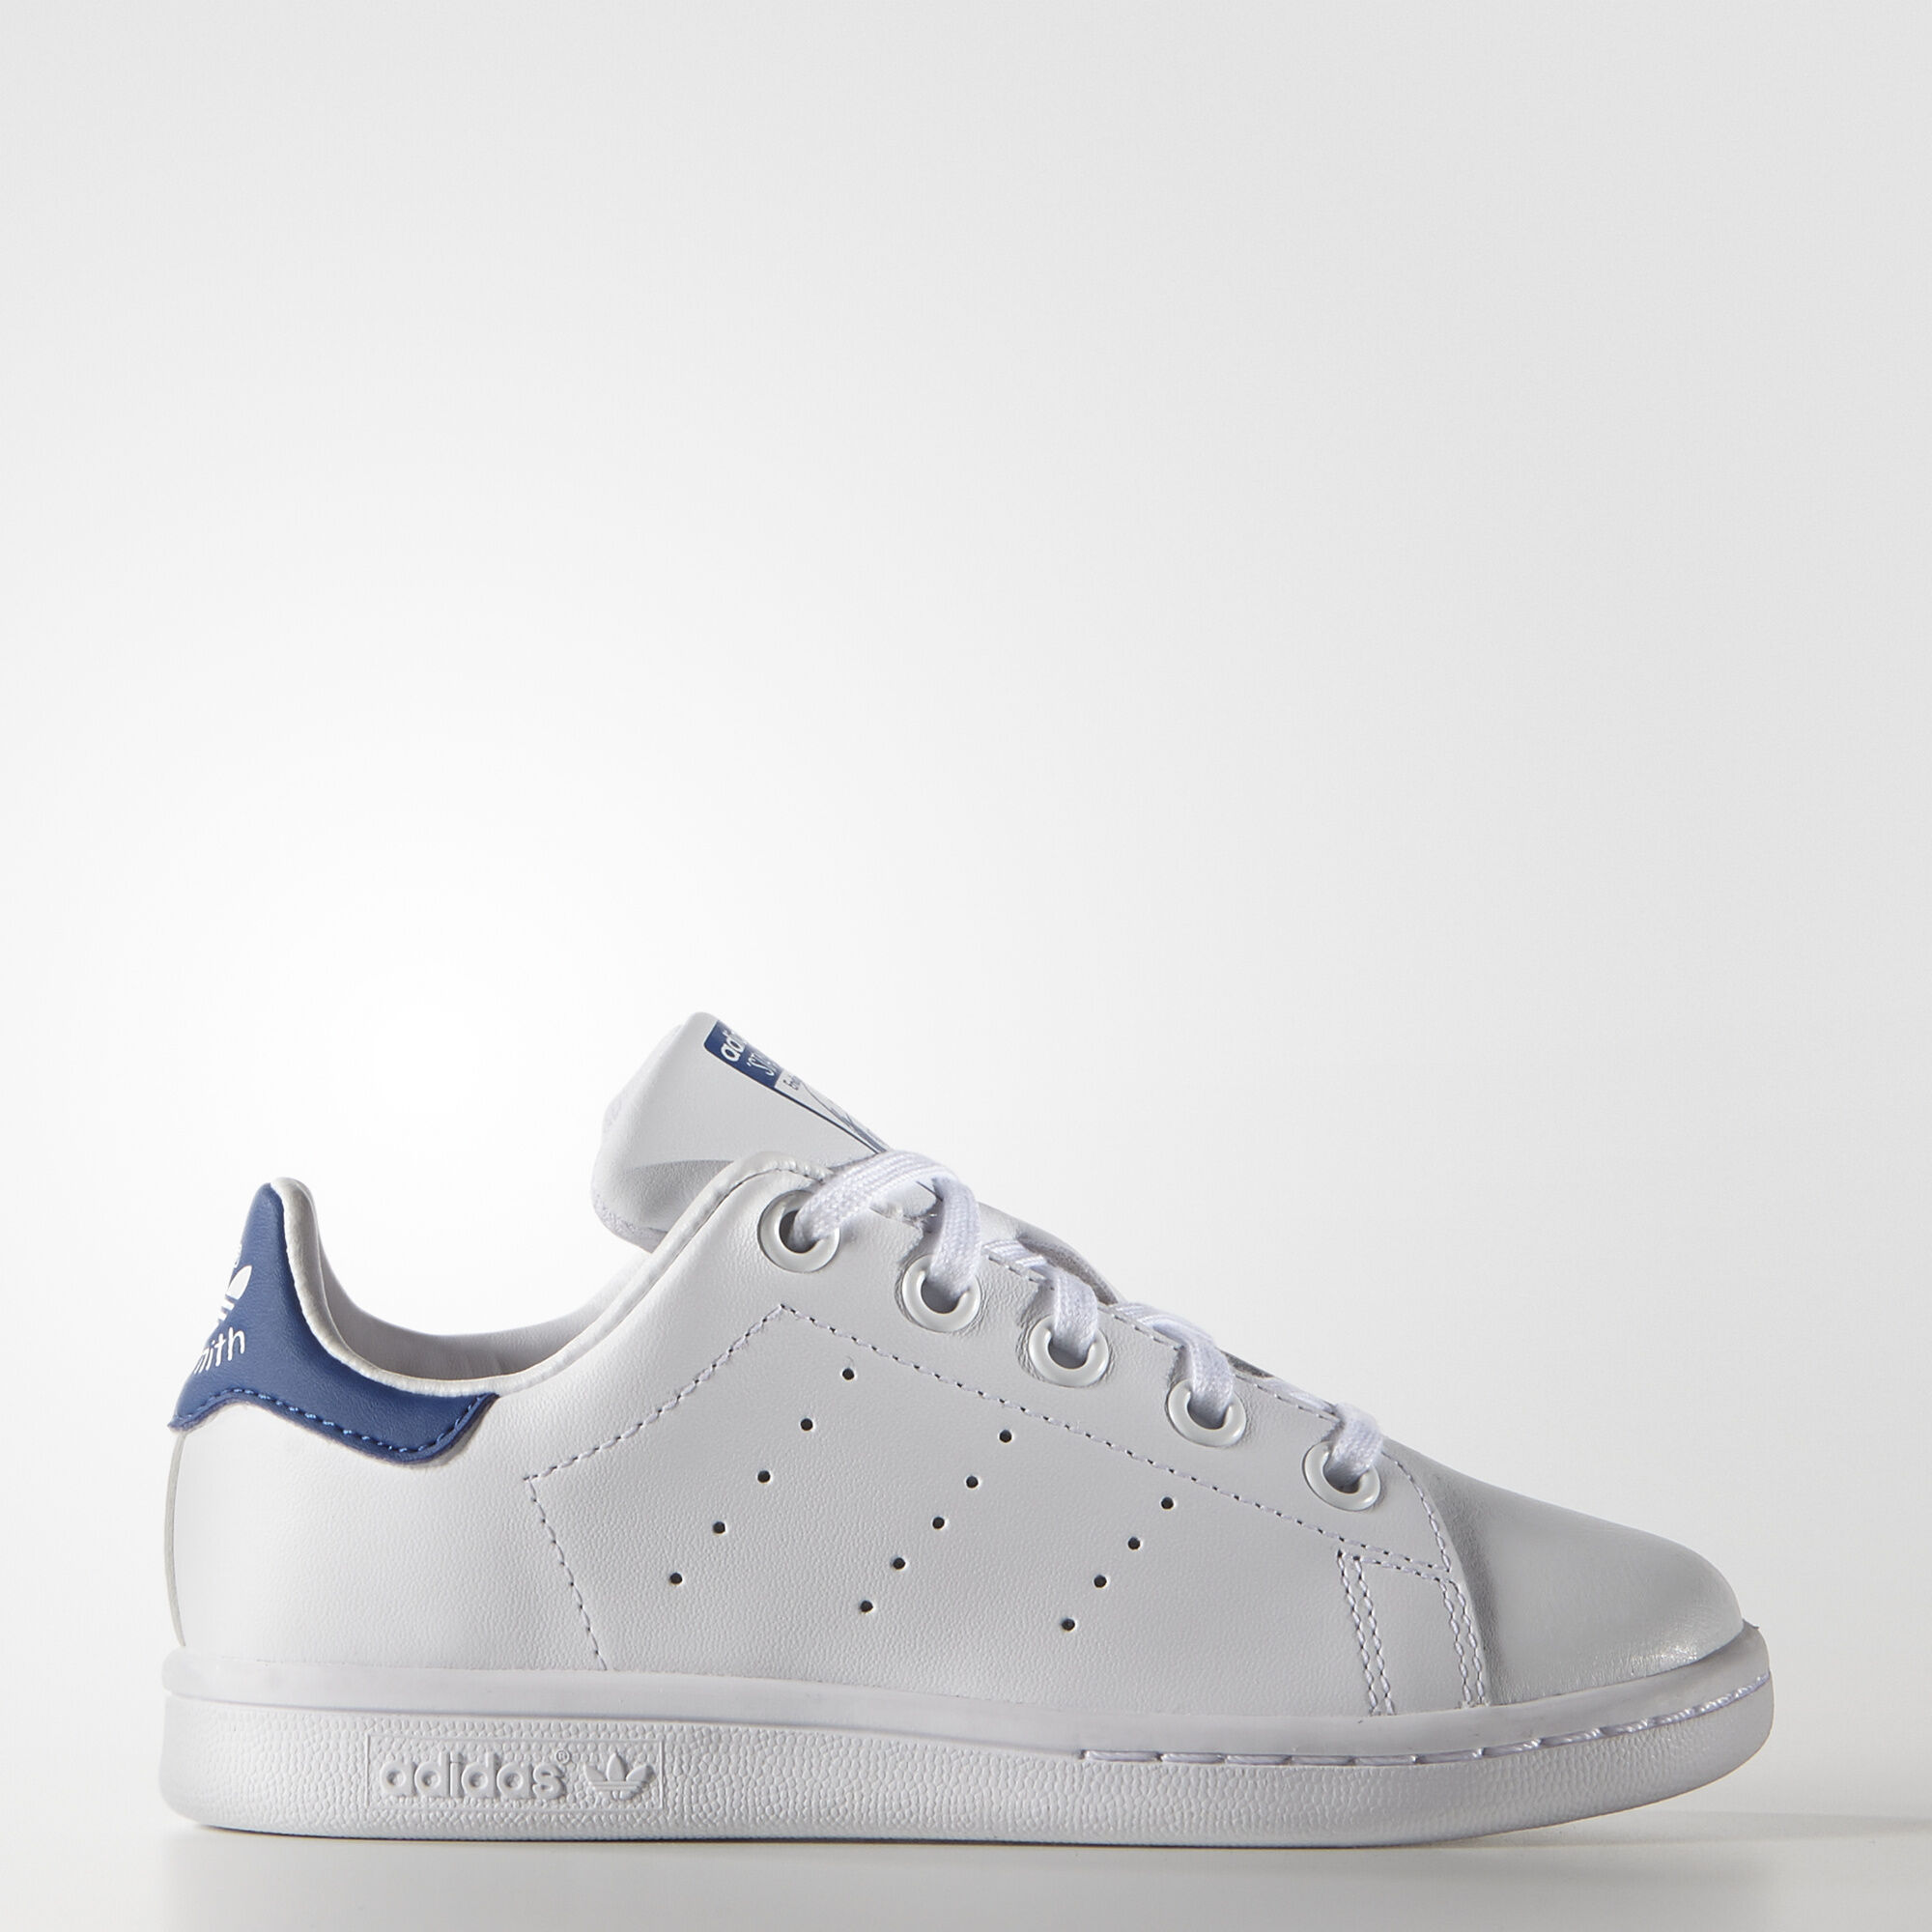 Stan Smith Adidas White Shoes